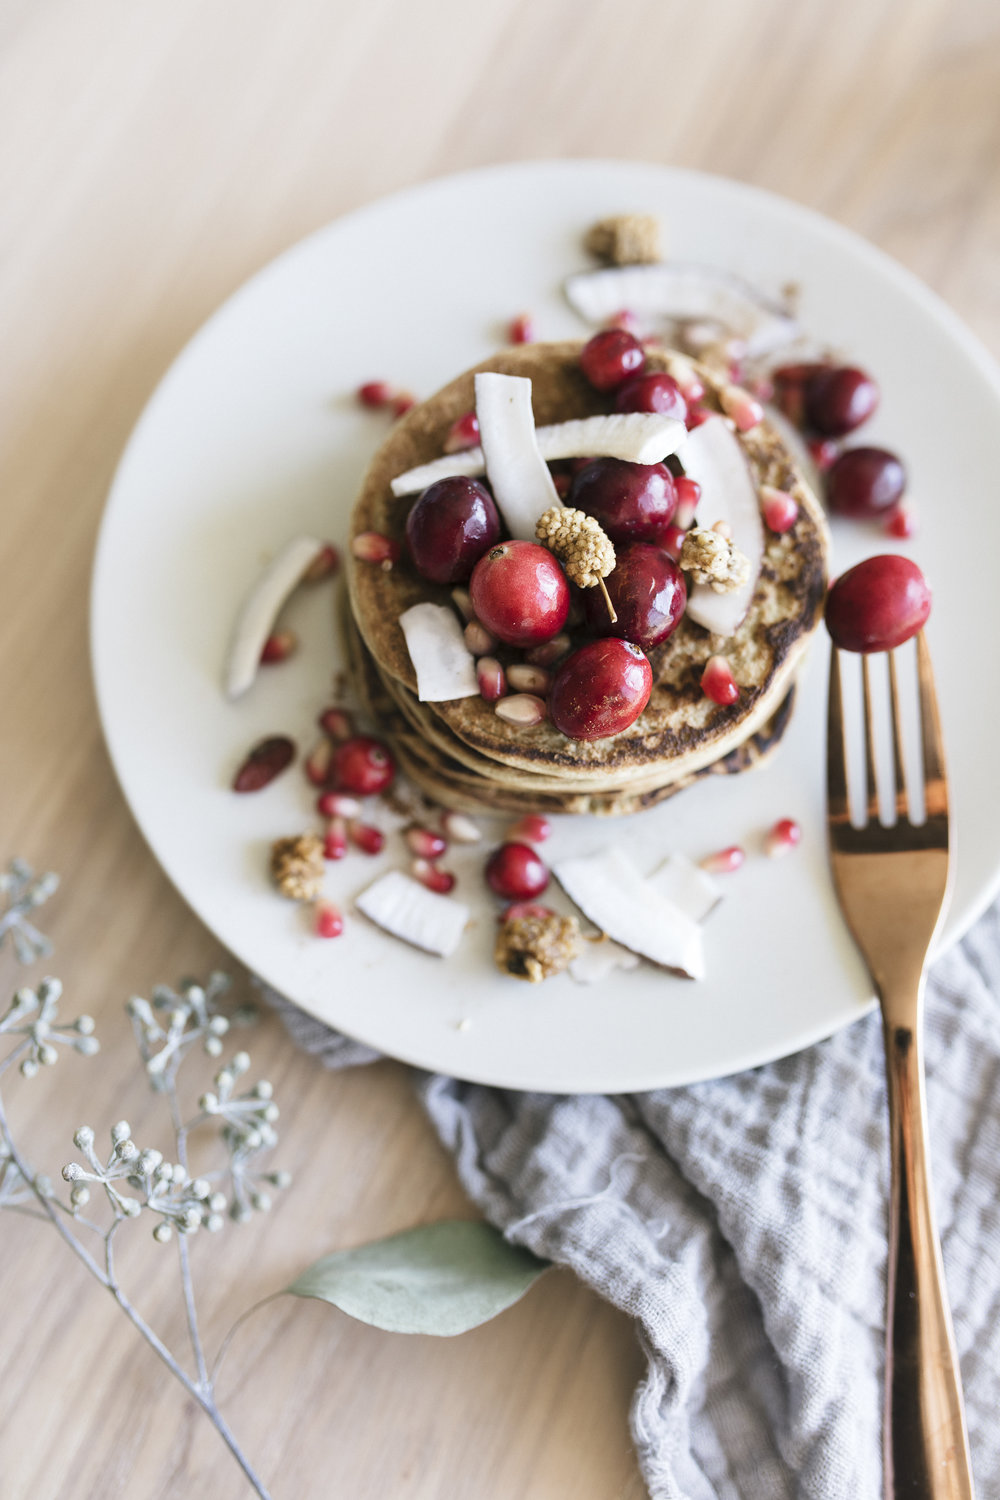 Pancakes are a delicious way to start the day. This recipe with garbanzo is a healthy, holiday inspired breakfast option